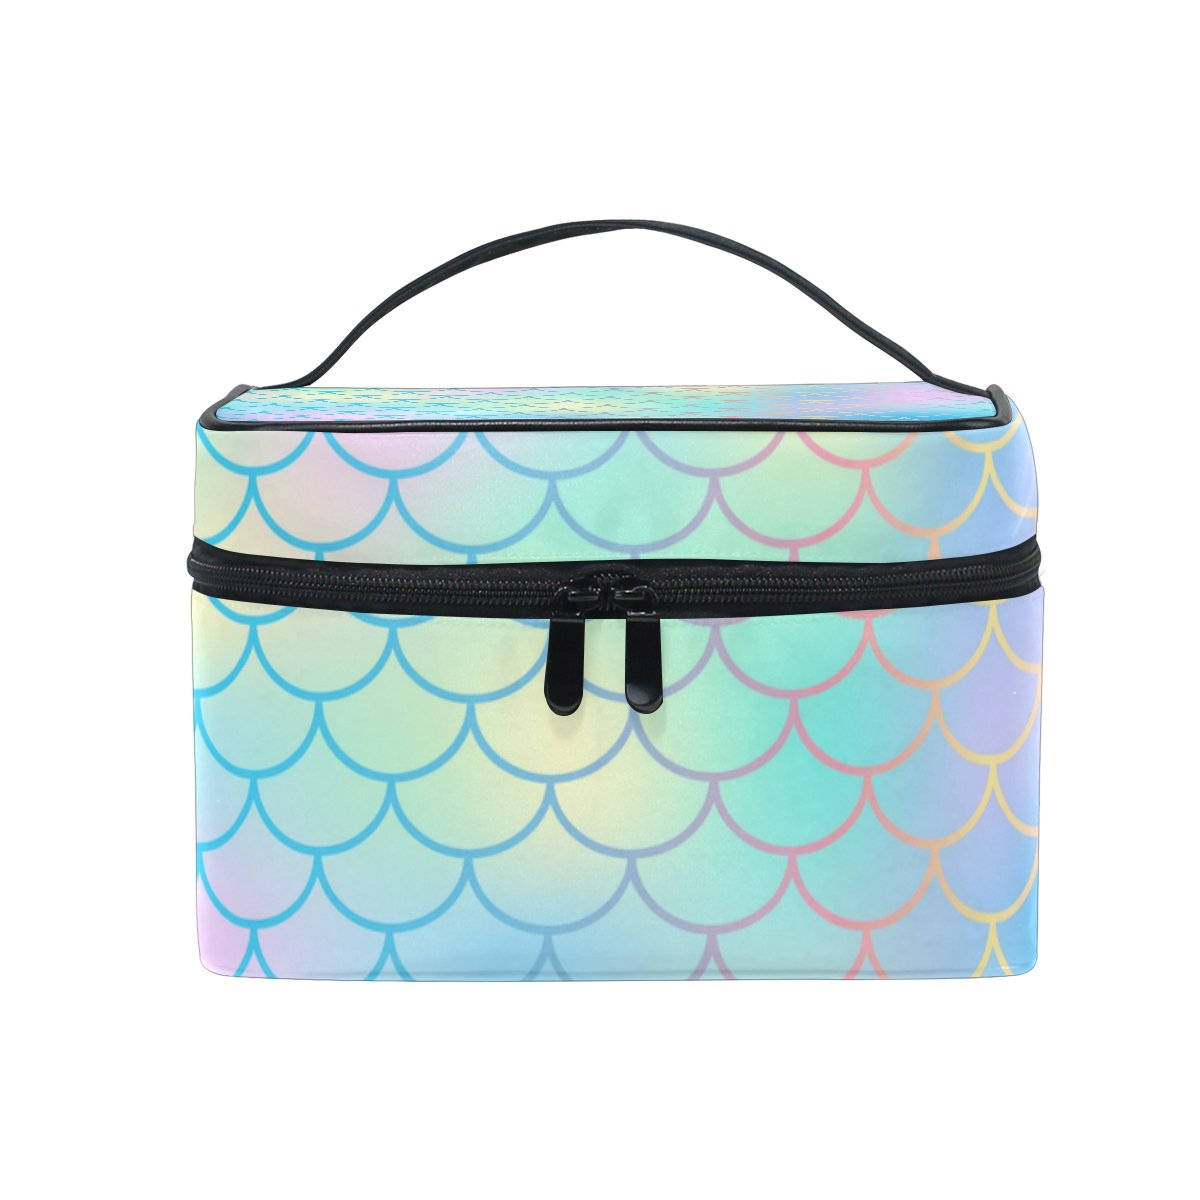 Portable Travel Makeup Cosmetic Bag Candy Color Magic Mermaid Fish Scale Pattern Durable Toiletry Organizer Train Case for Women Girls My Little Nest